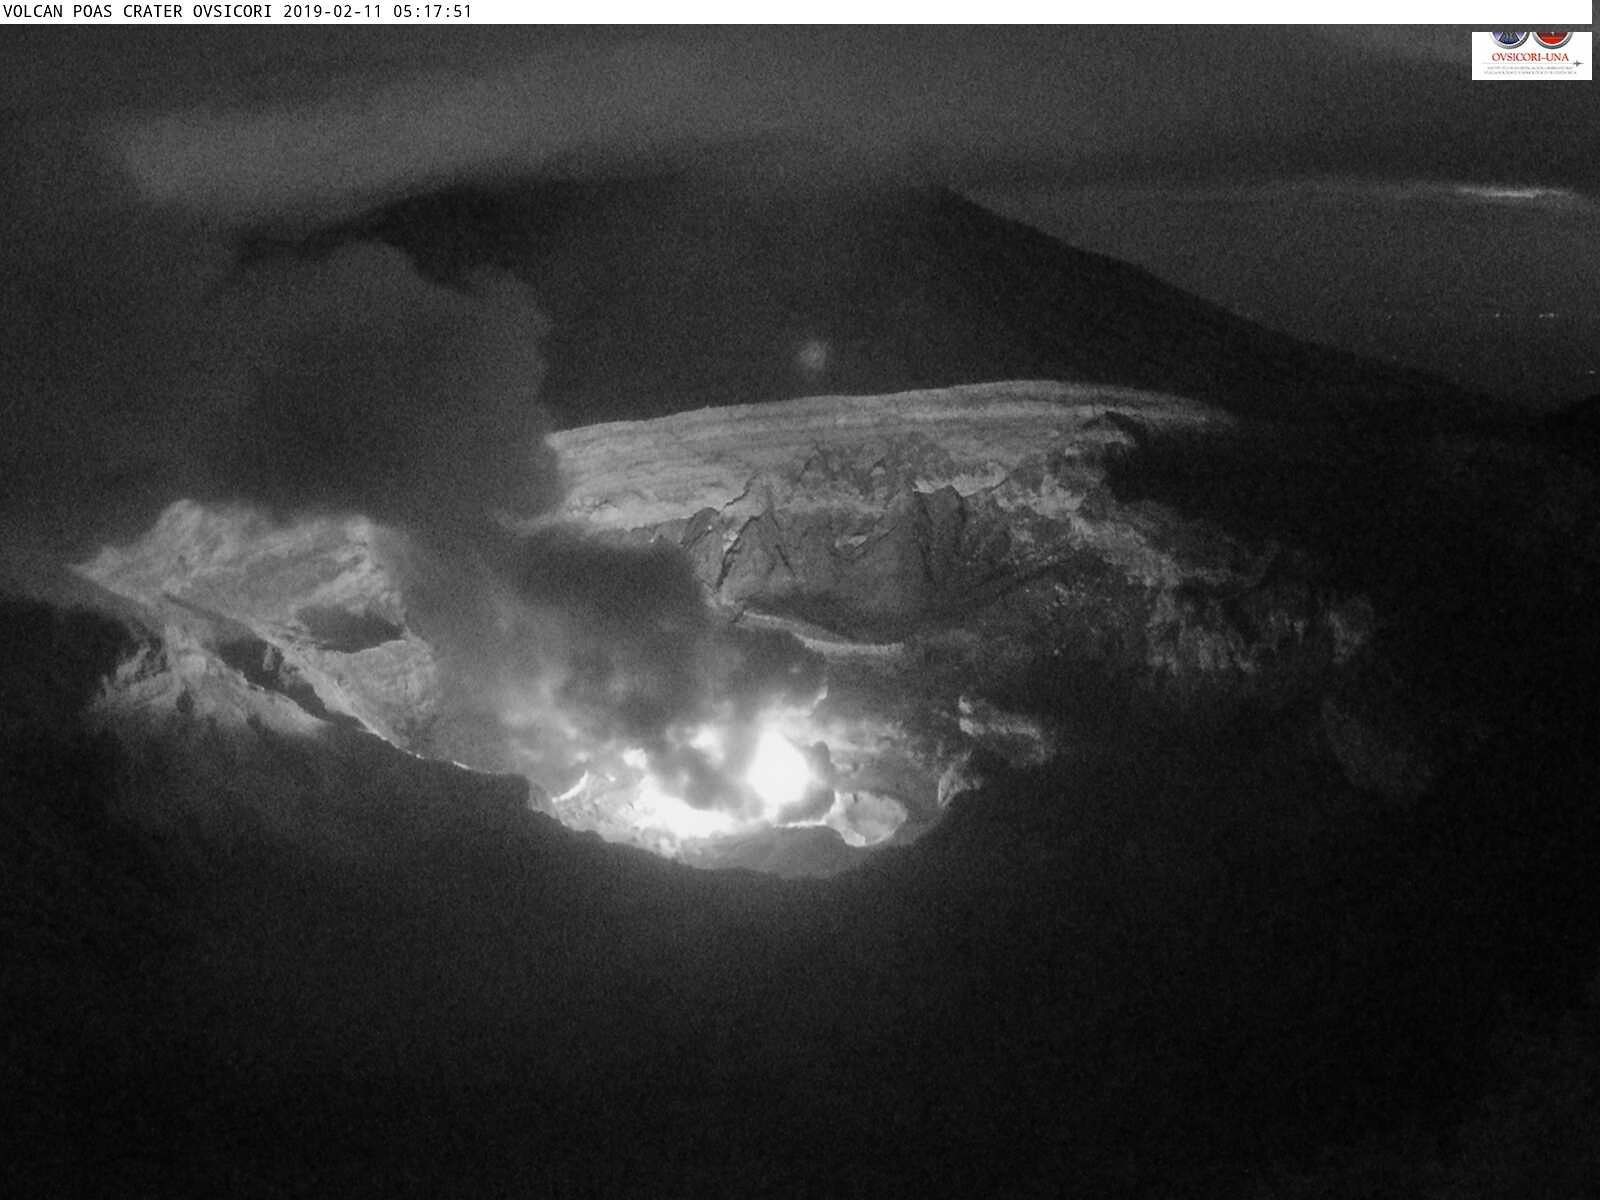 Poas- strong glow at the mouth of the fumaroles on 11.02.2019 / 05h17 Poas - webcam Ovsicori